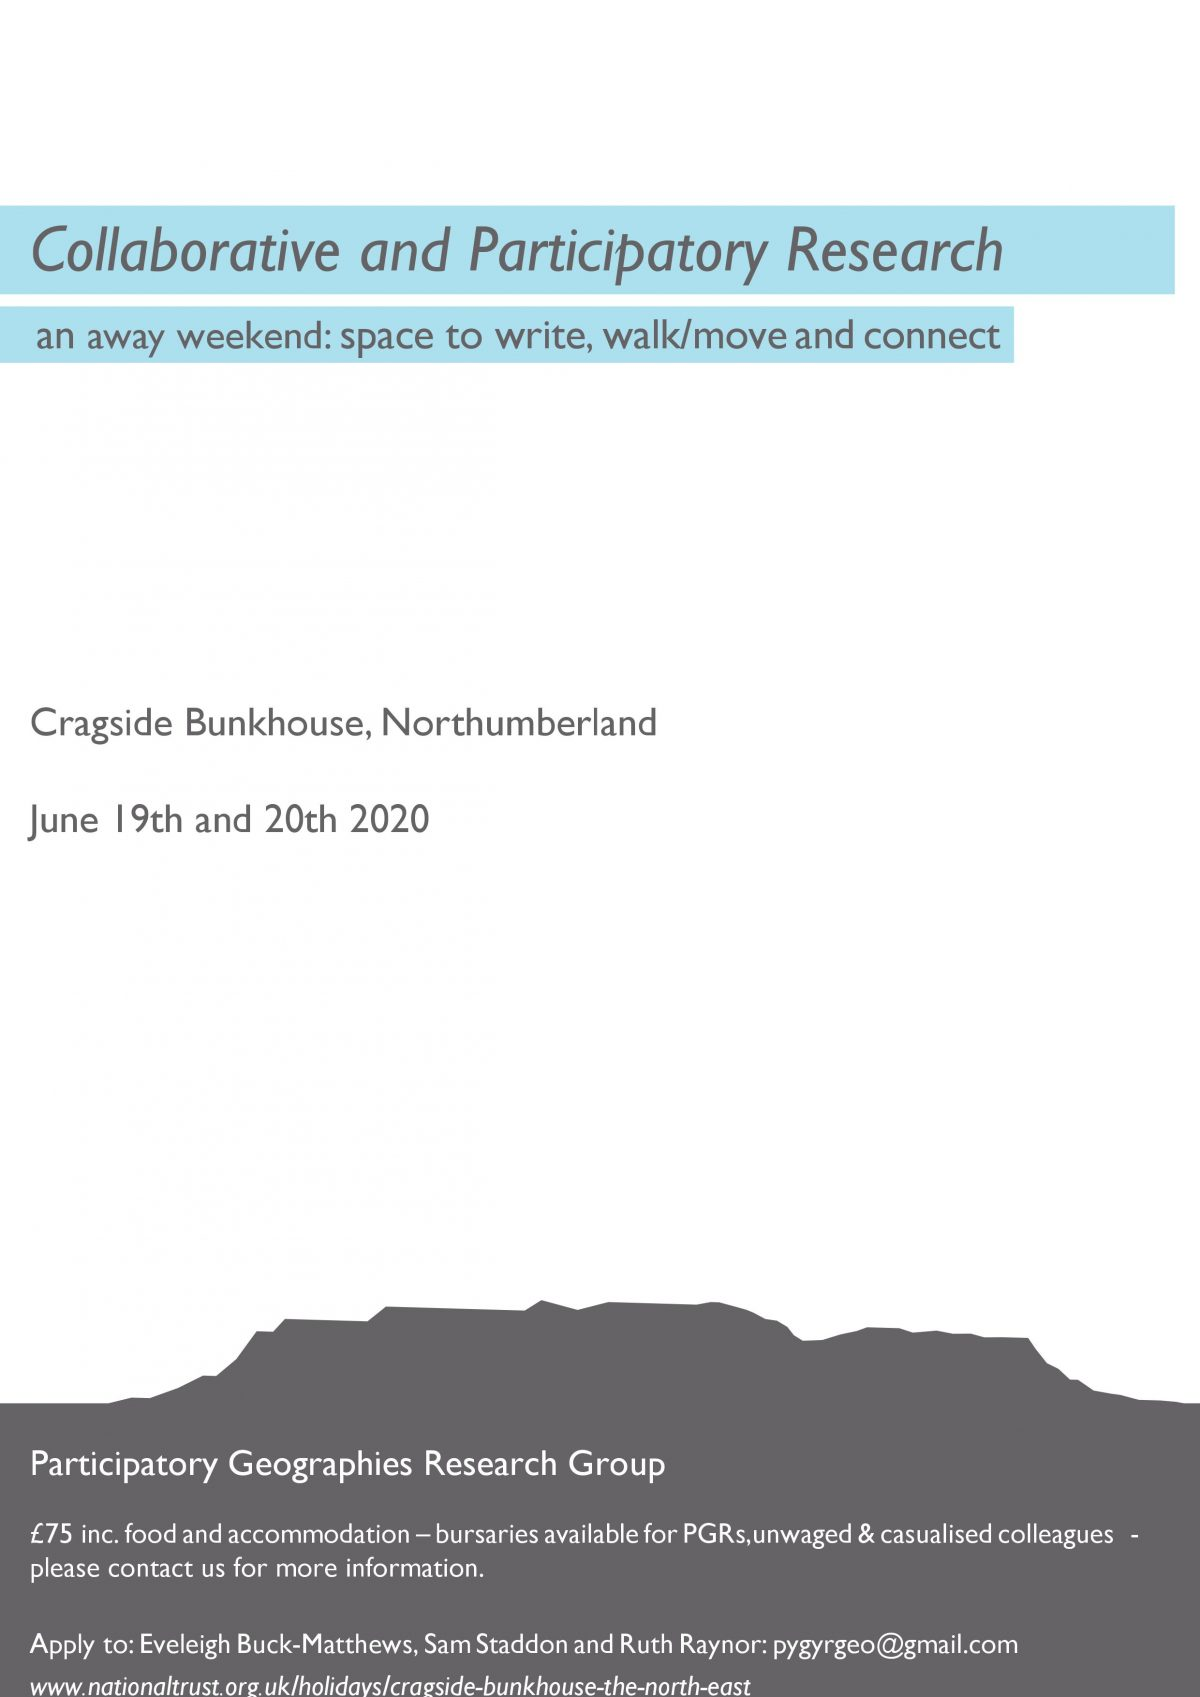 Collaborative and Participatory Research Away Weekend